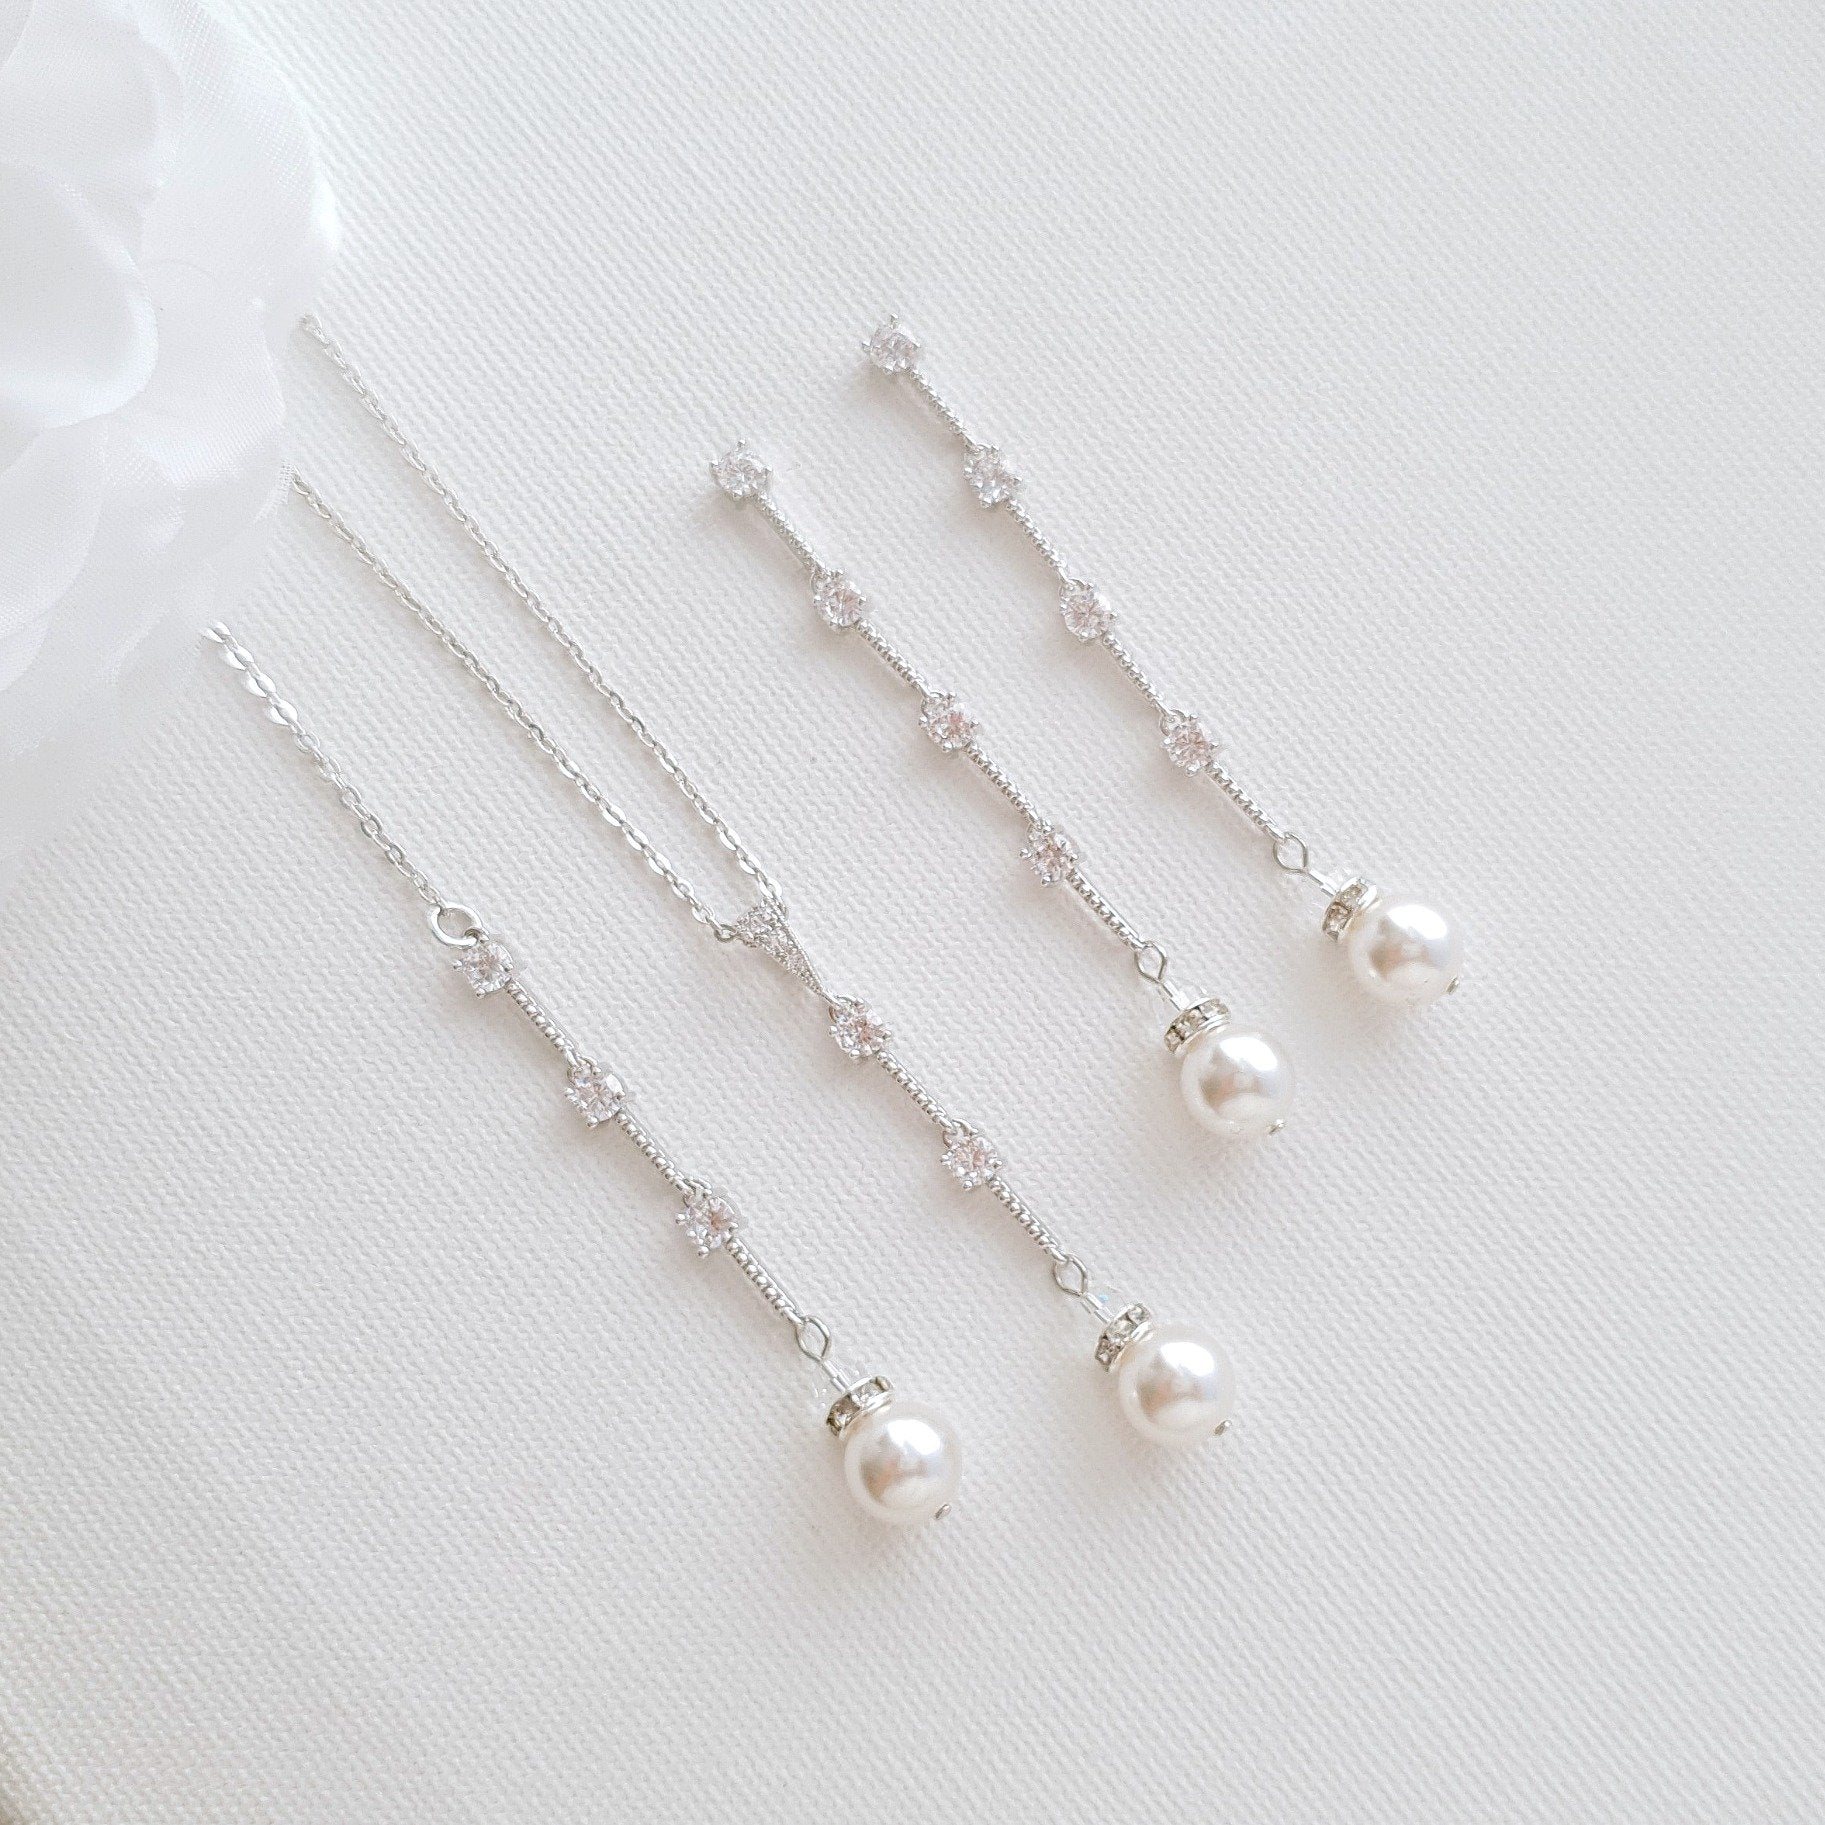 Pearl Drop Necklace Earring Jewelry Set for Weddings- Ginger - PoetryDesigns